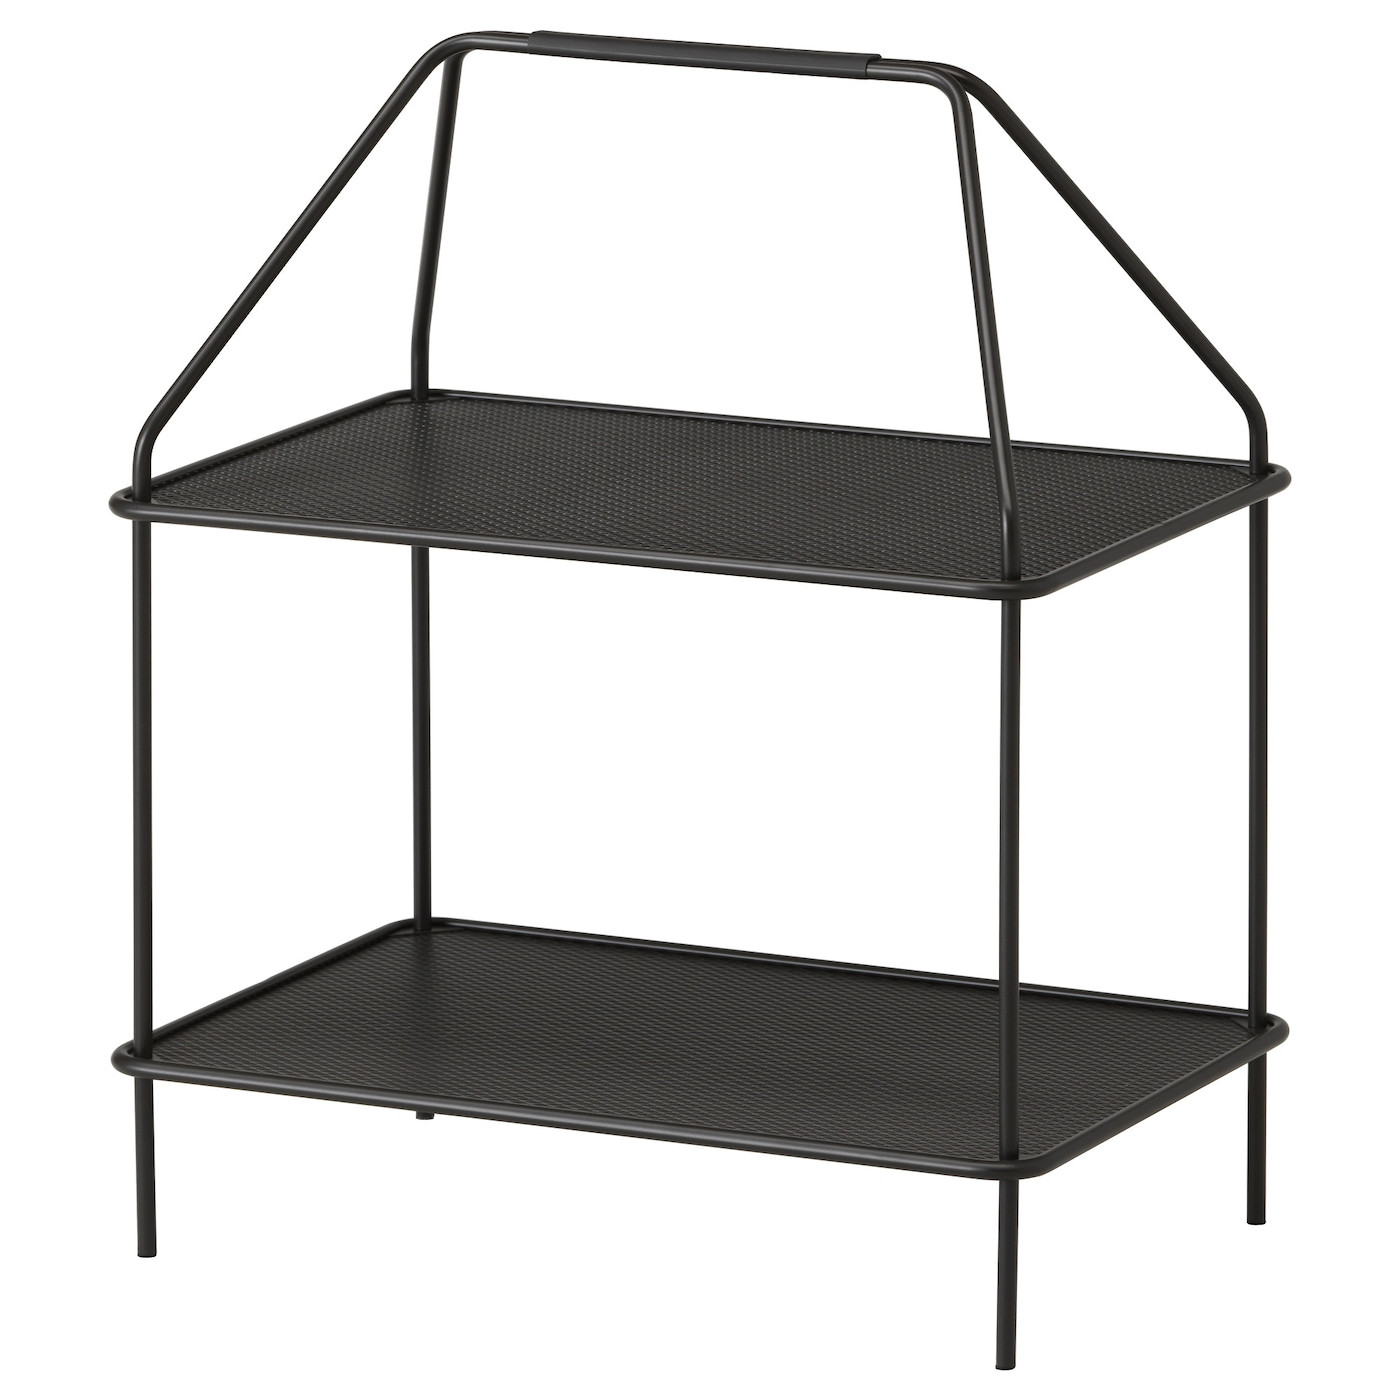 IKEA YPPERLIG magazine stand Low weight; easy to move.